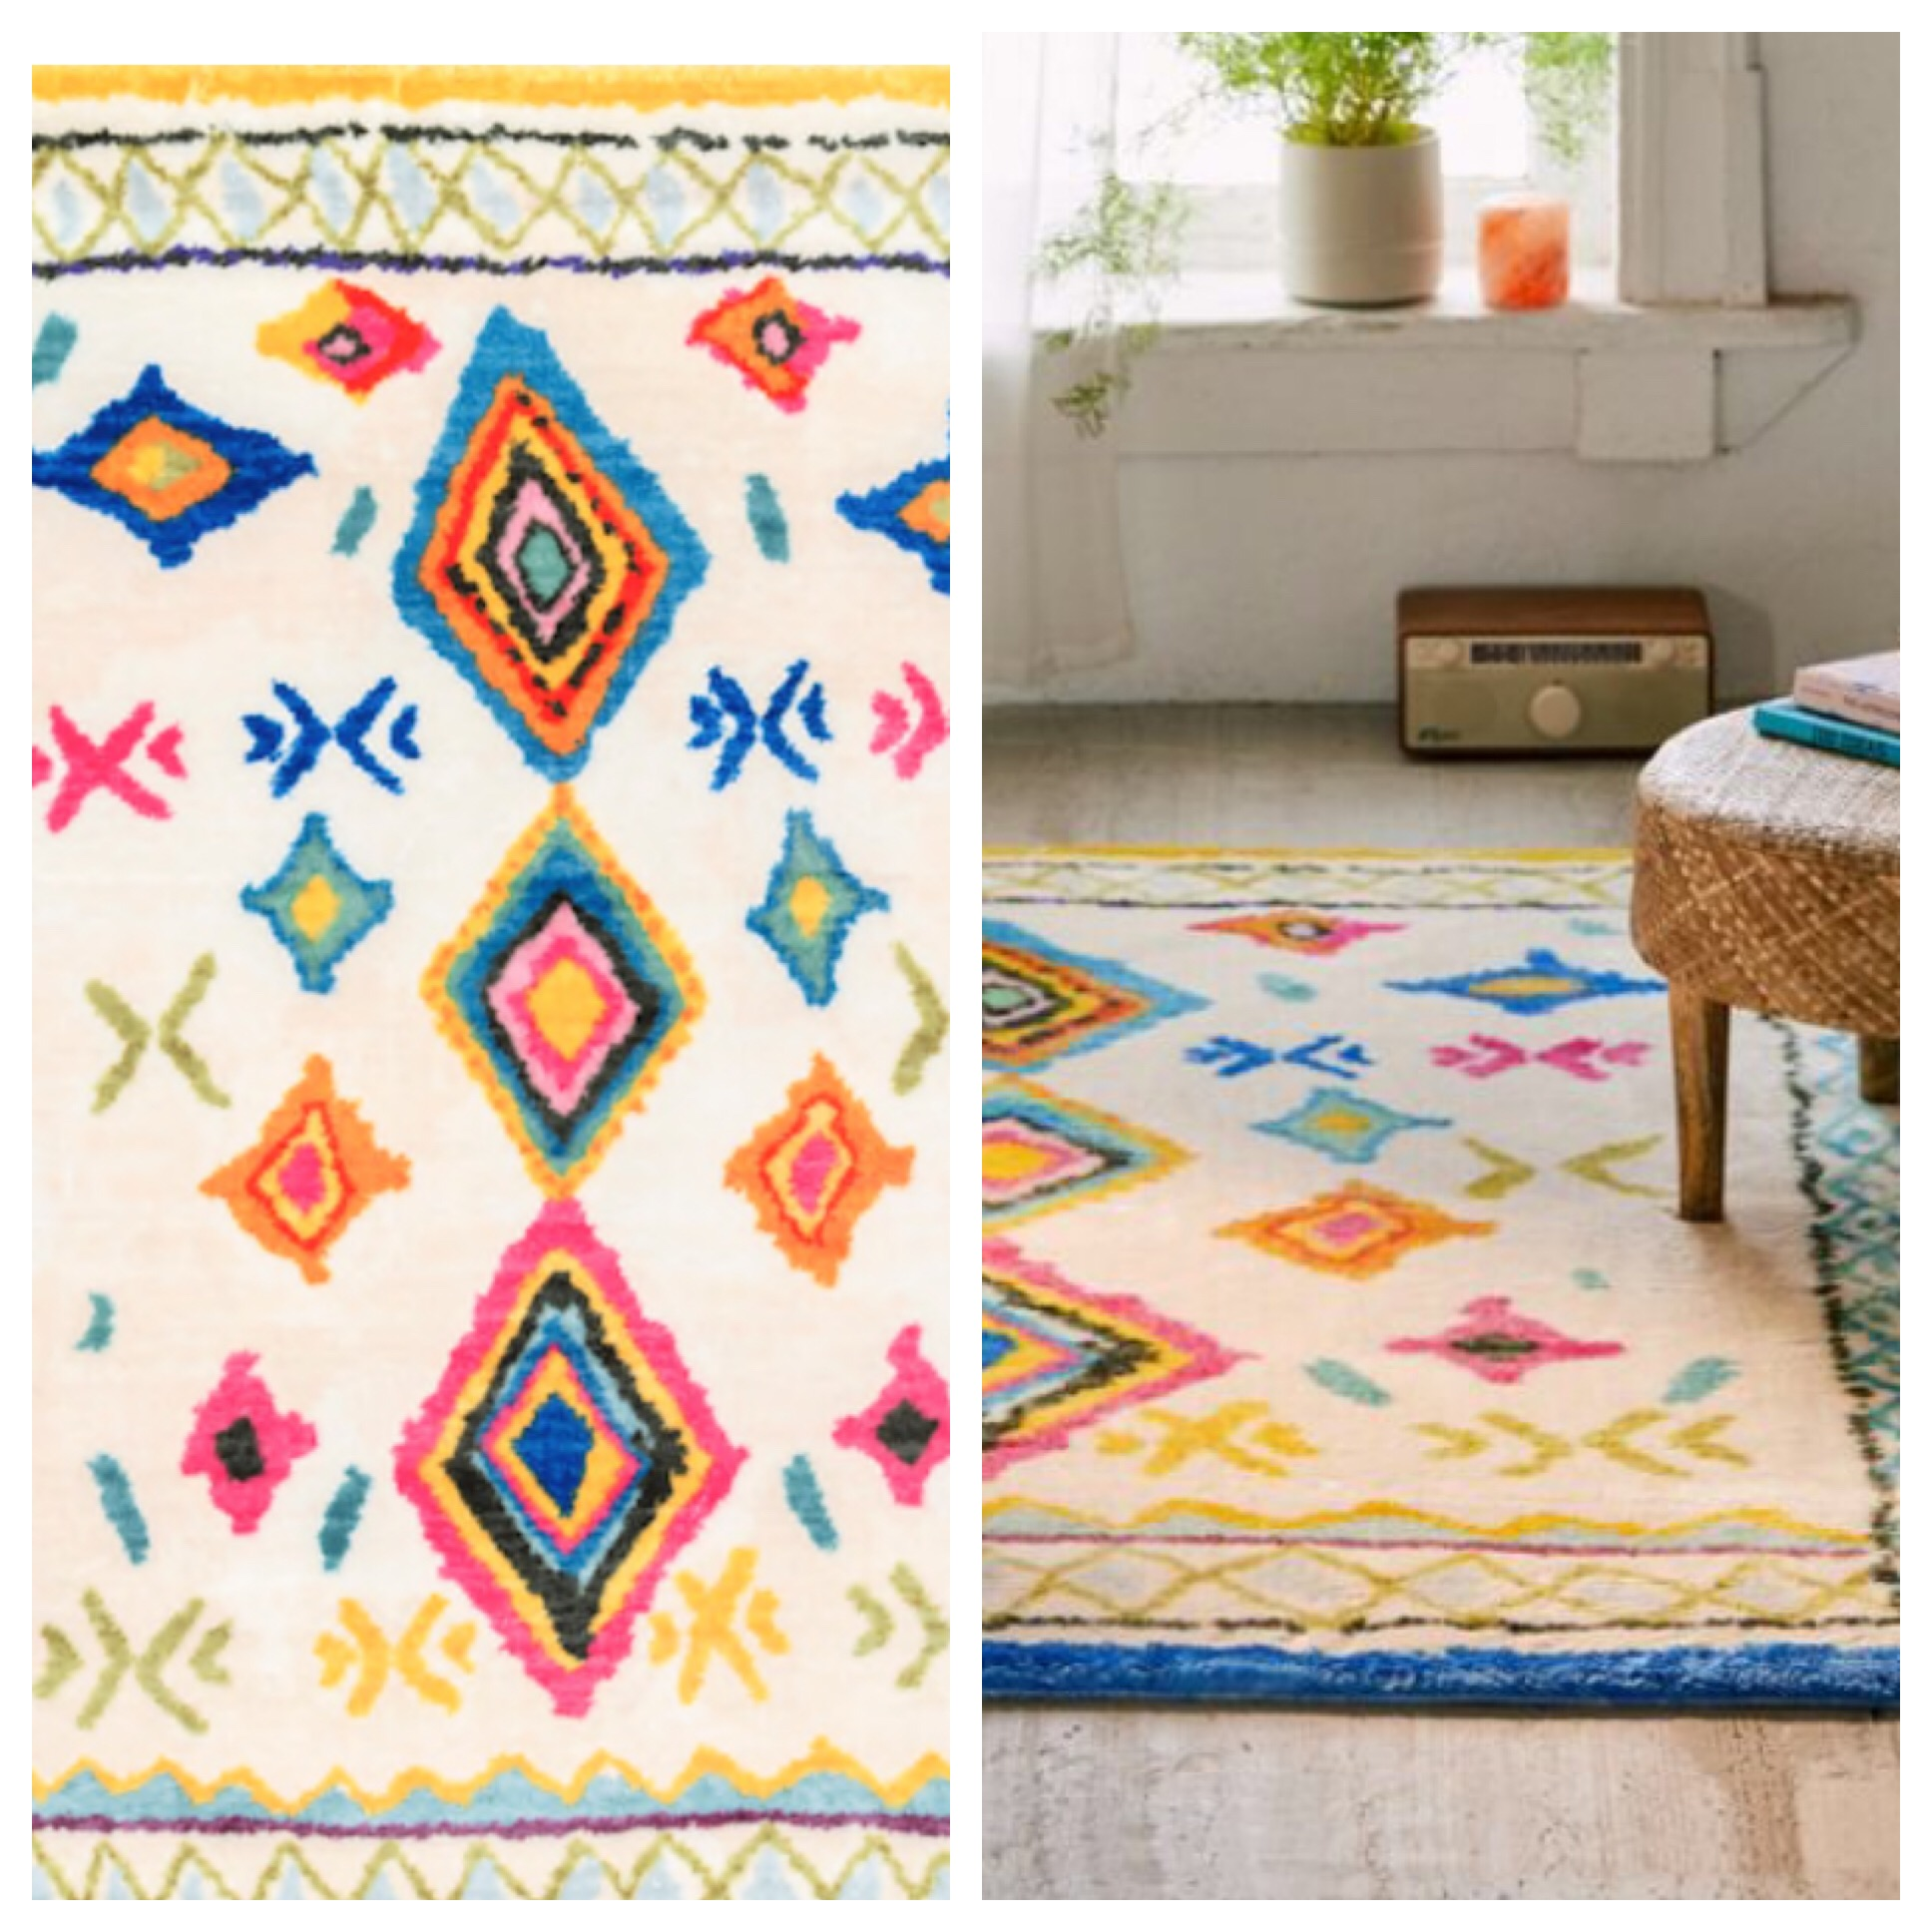 You can get the Casa Too Shag Rug for $389 from Urban Outfitters OR you can get the Multi Soft Souma Kids watercolor Area rug from RUGSUSA for $246. THEY ARE EXACTLY THE SAME YOU GUYS!!!